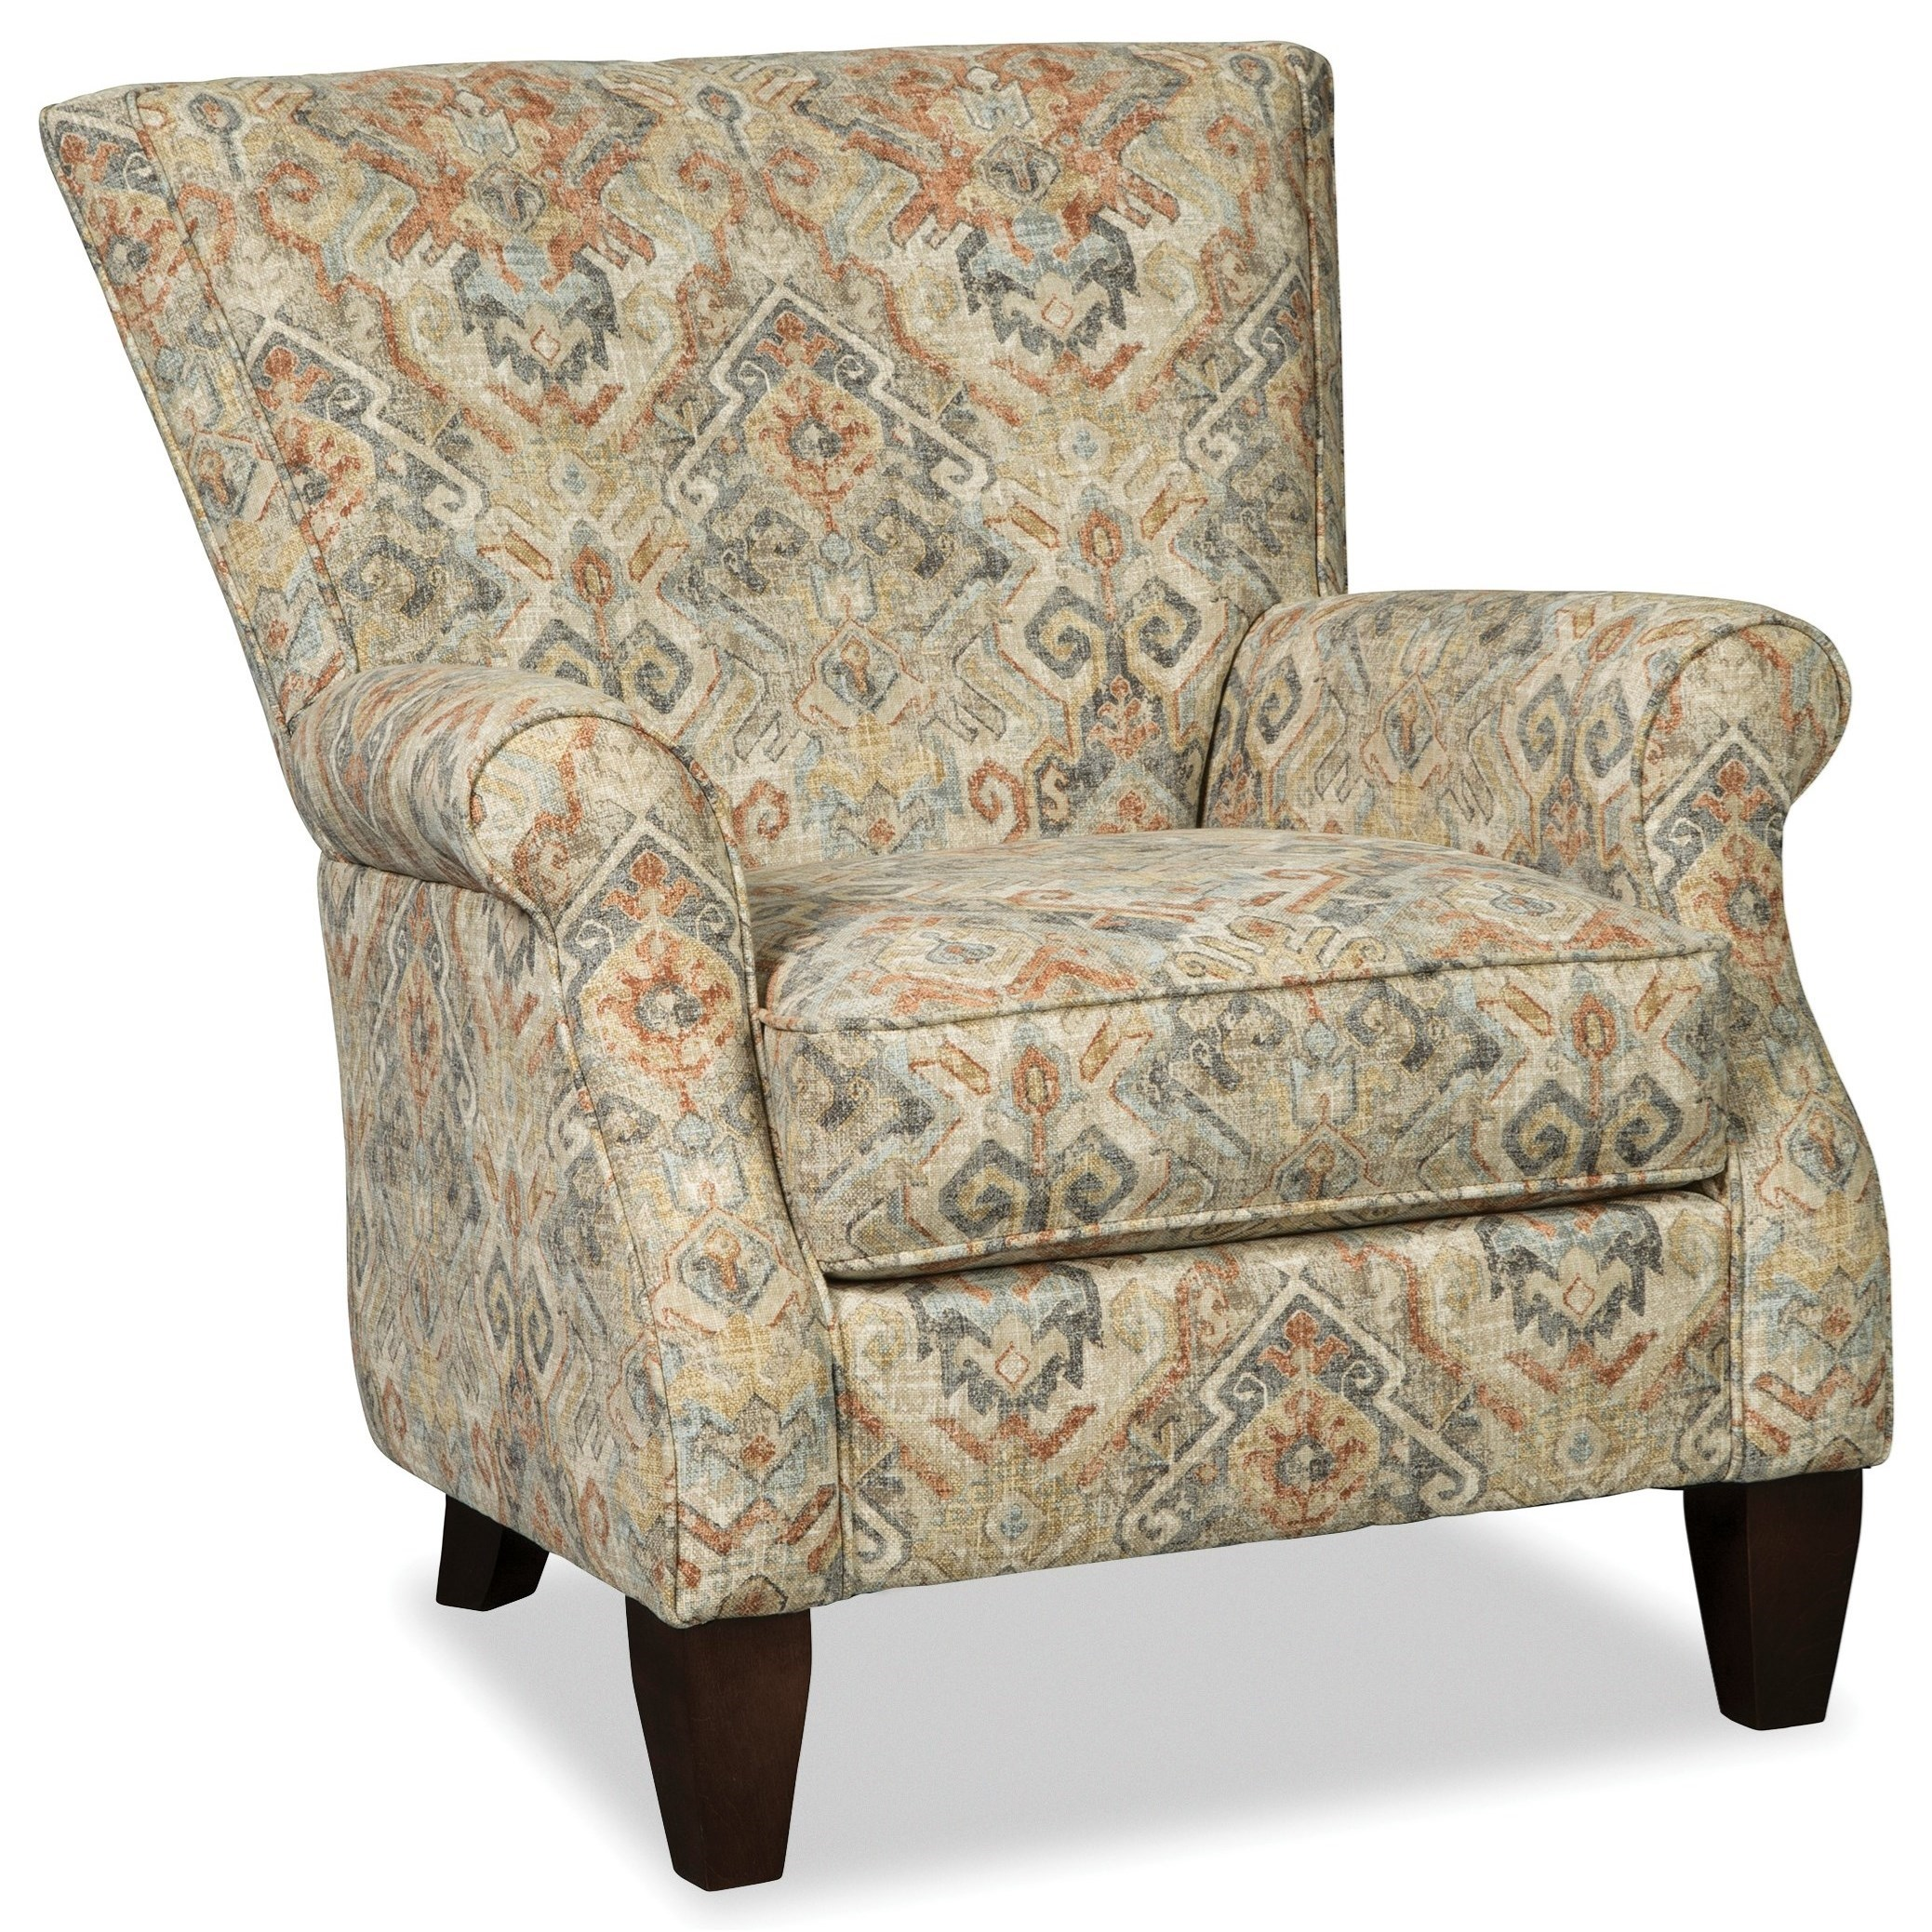 Accent Chairs Contemporary Upholstered Chair by Craftmaster at Zak's Home